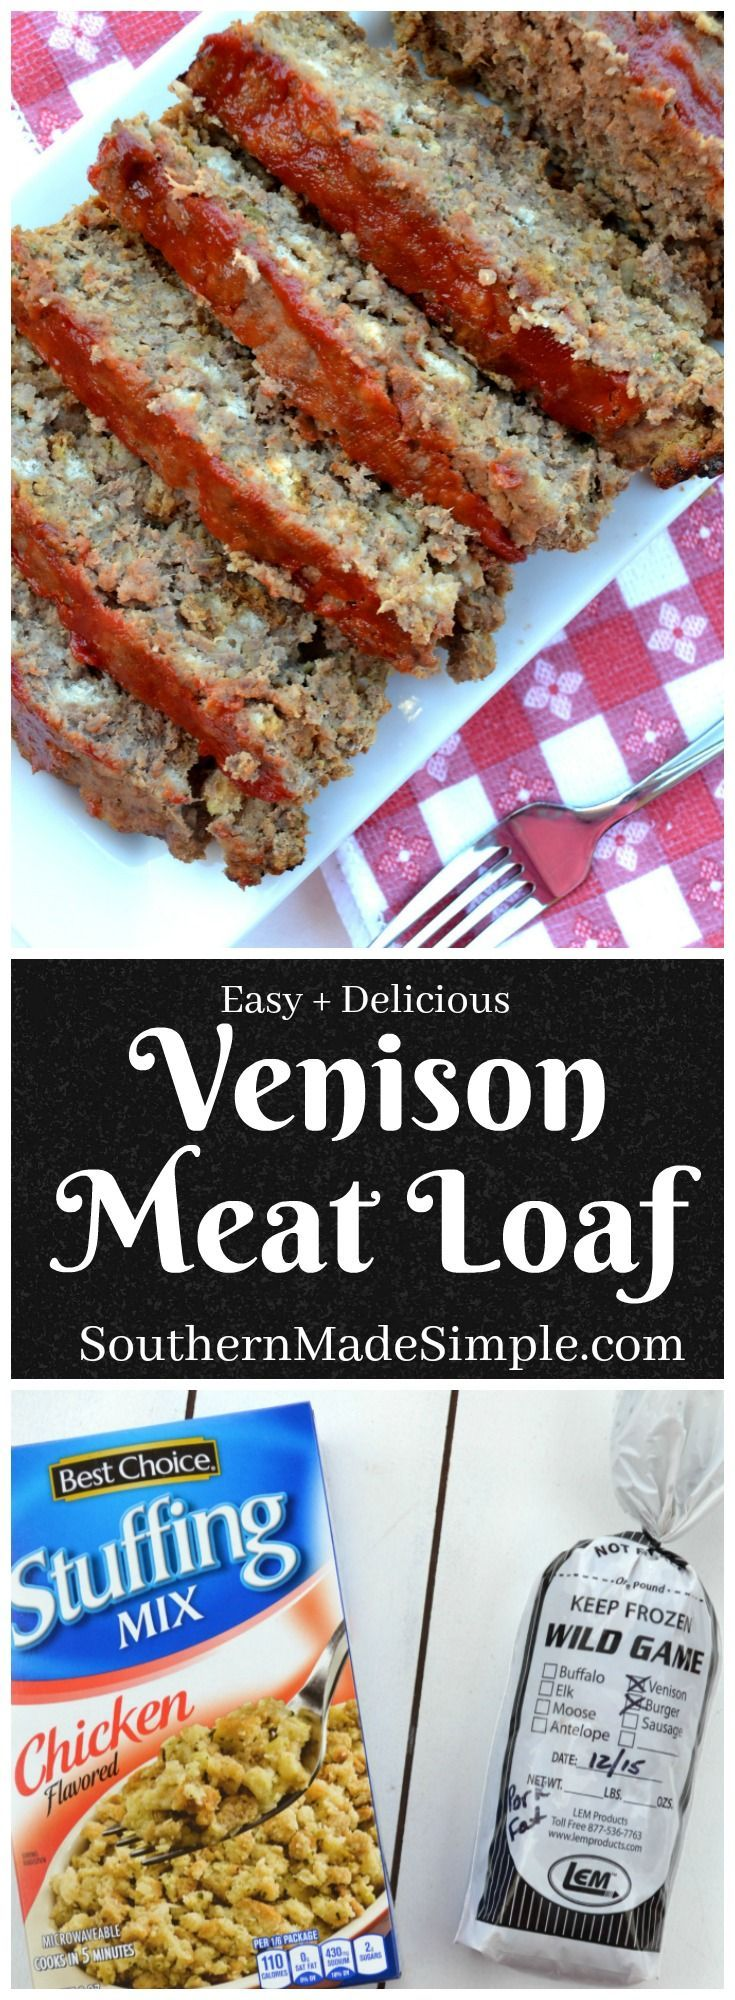 This meat loaf is THE meat loaf that converted me into a meat loaf fan. It's SO delicious and easy to make! You can use ground venison or ground beef in this recipe.